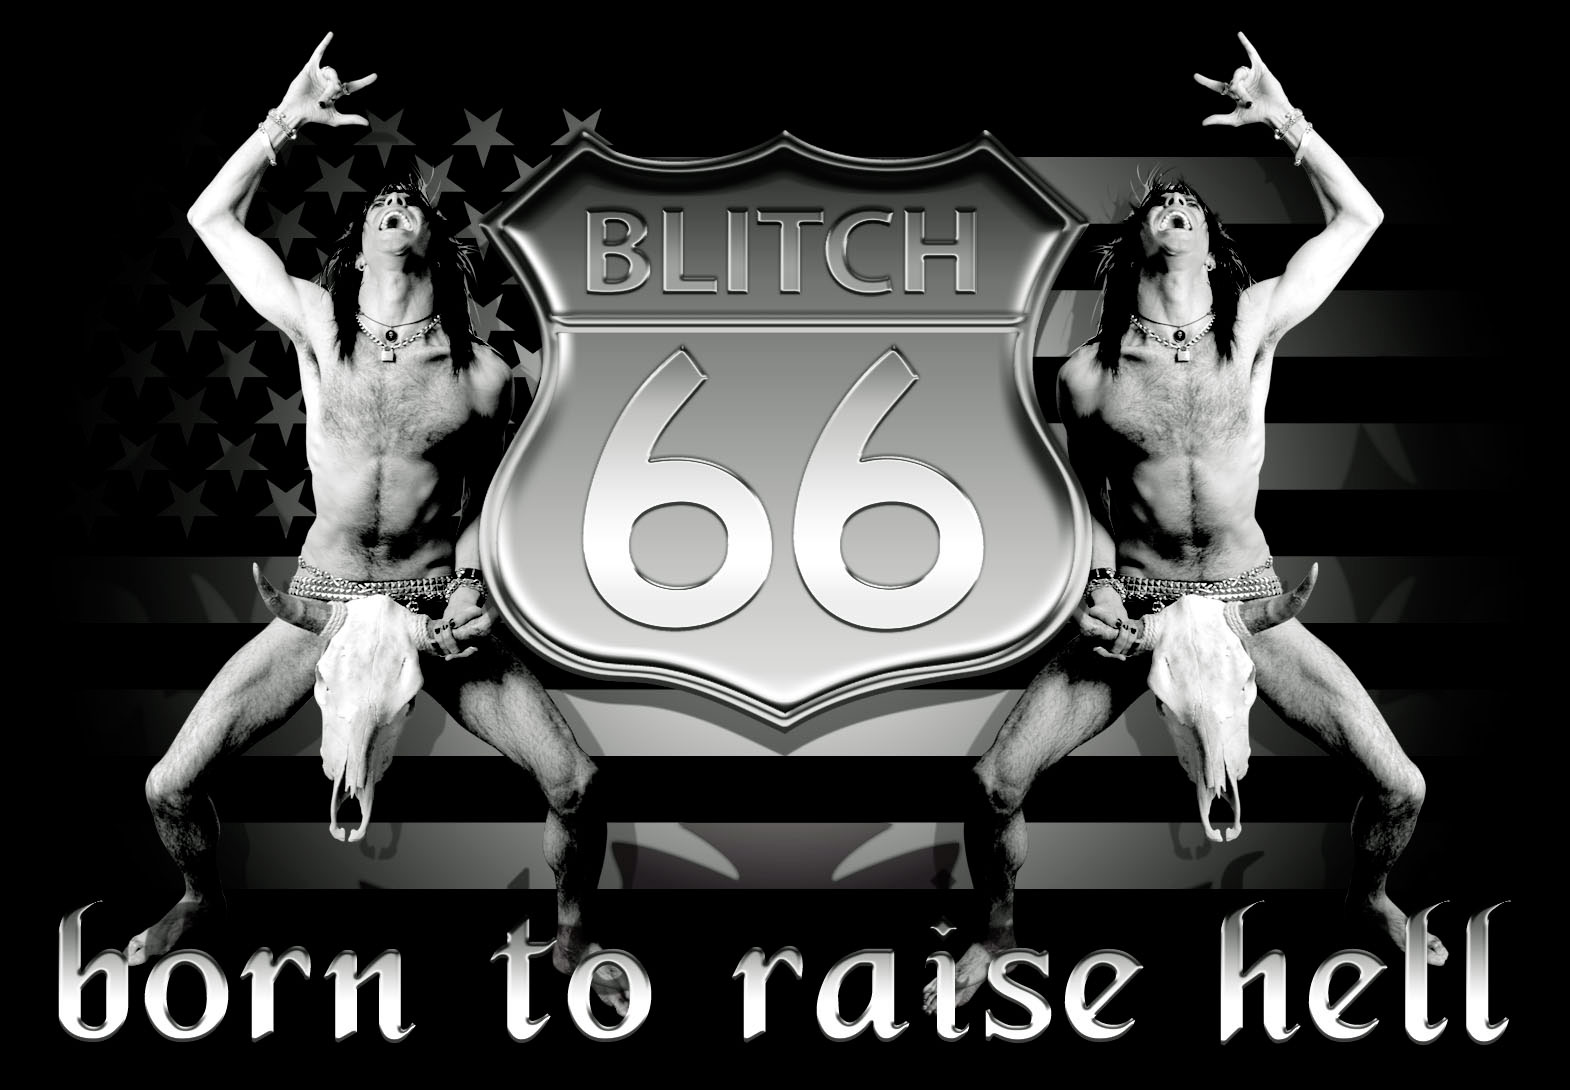 Blitch66 is the original psycho naked cowboy